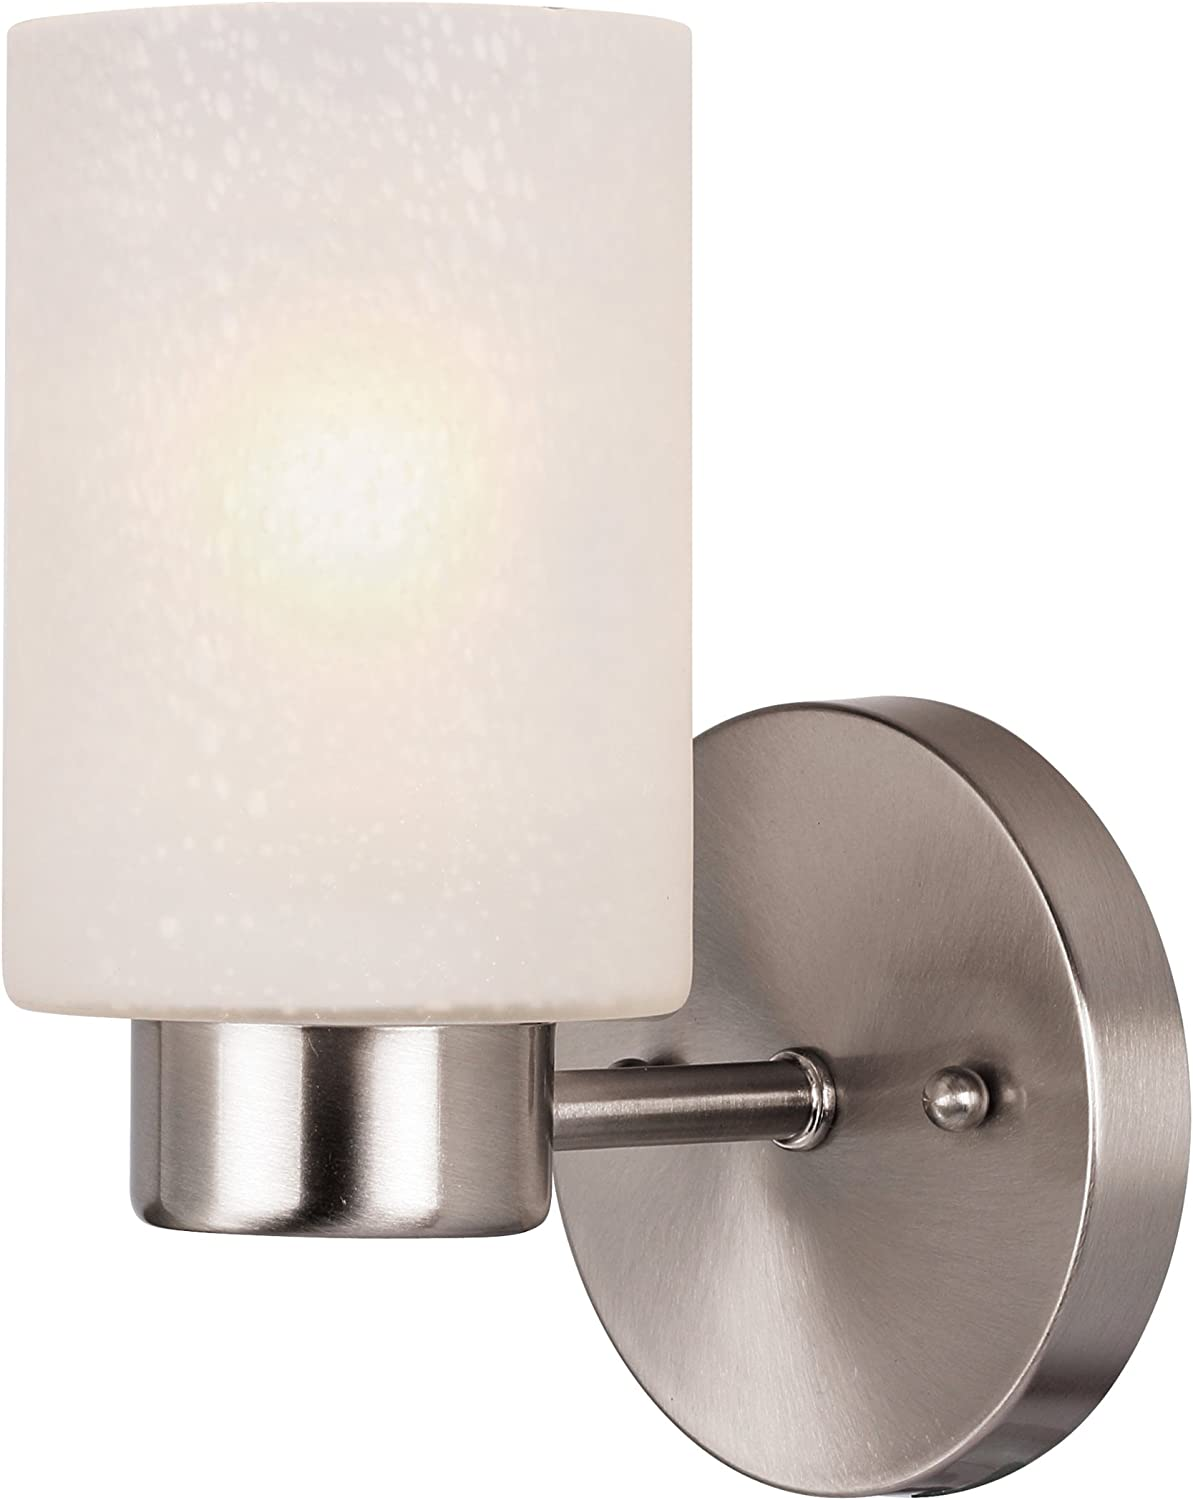 Westinghouse Lighting 6227800 Sylvestre Indoor Wall Fixture, Brushed Nickel Finish with Frosted Seeded Glass, 1, Bn One Light - Wall Sconces -